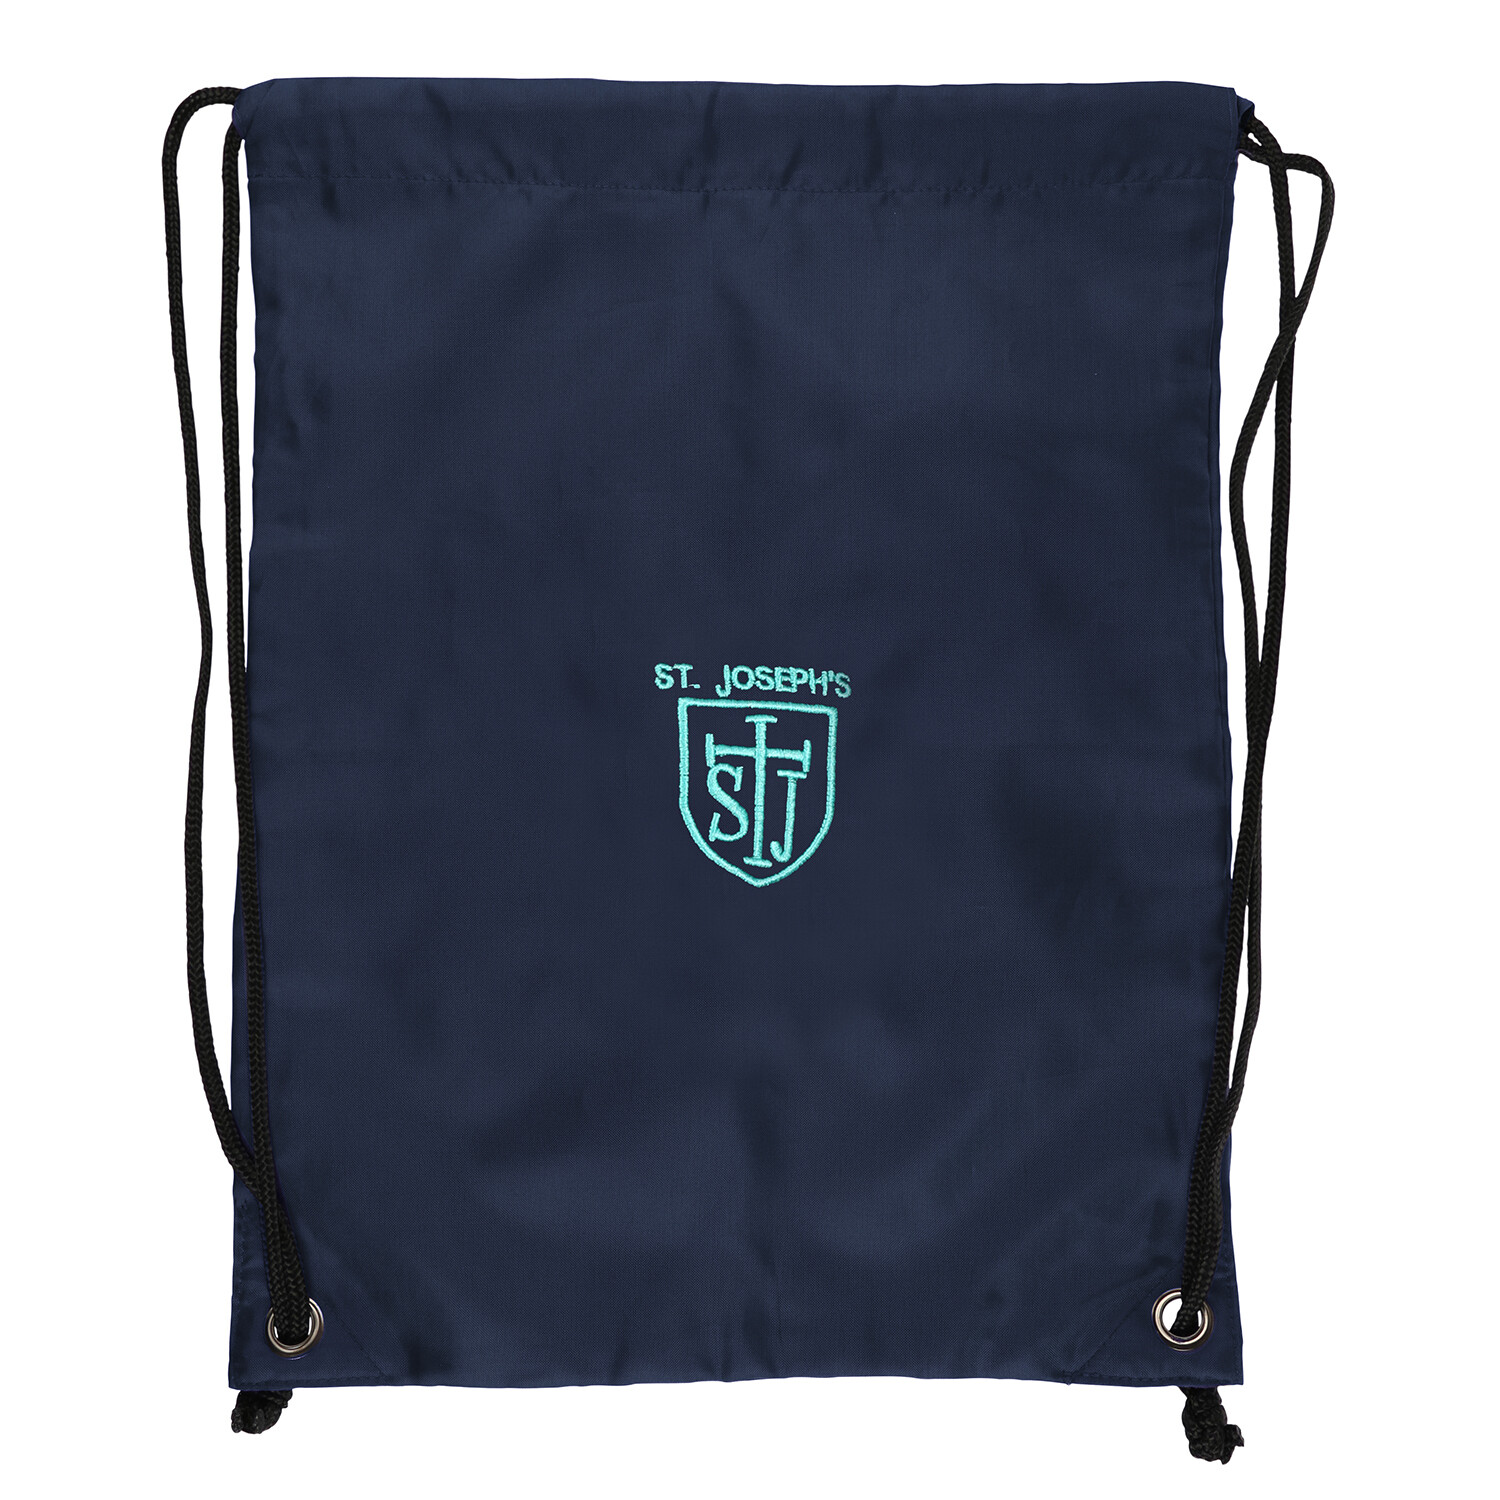 St Joseph's Primary Gym Bag